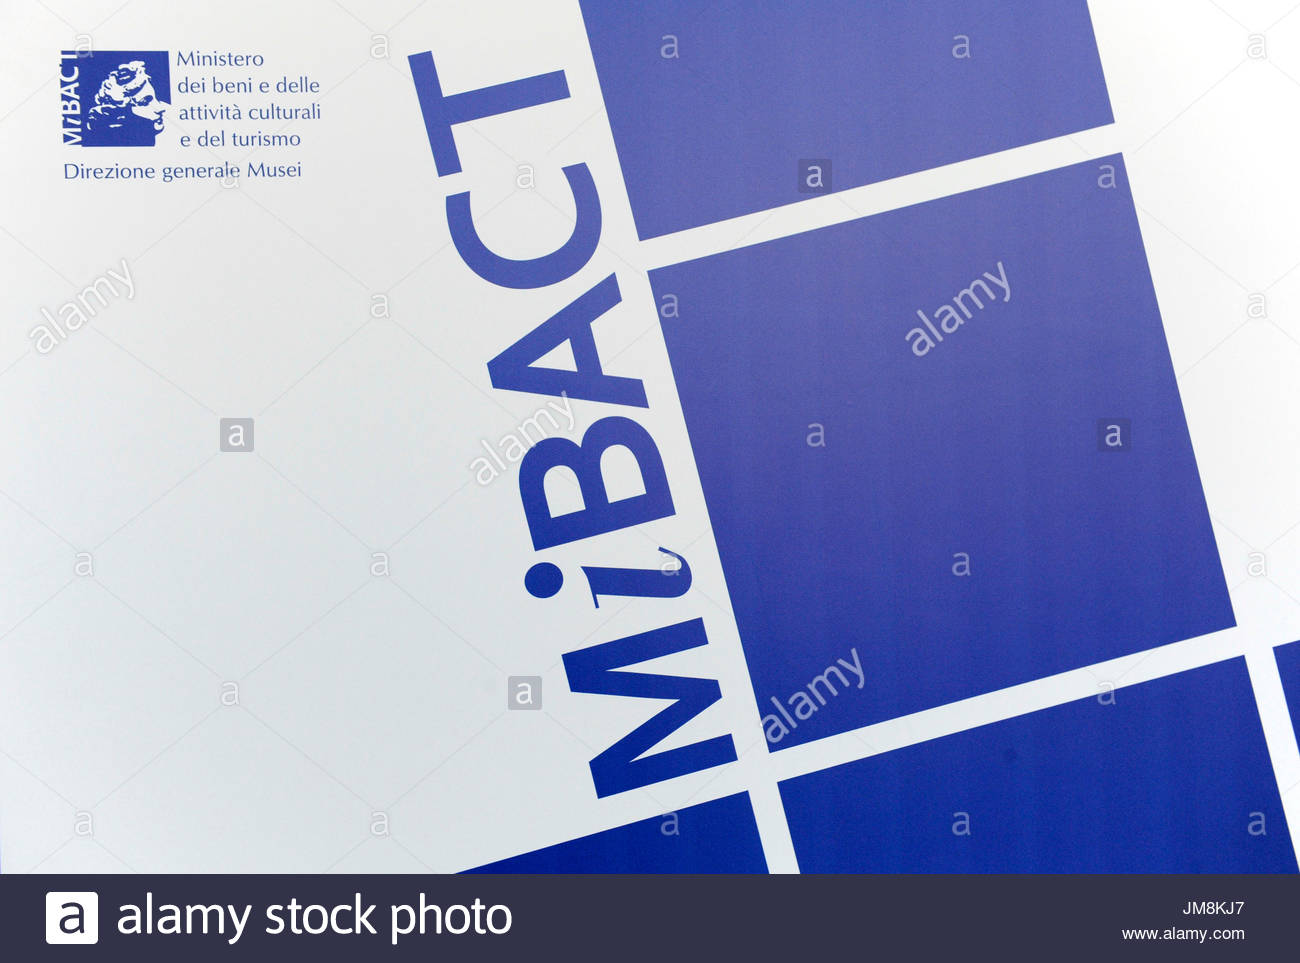 Mibact. Mibact - Ministry of Cultural Heritage and Activities board ...